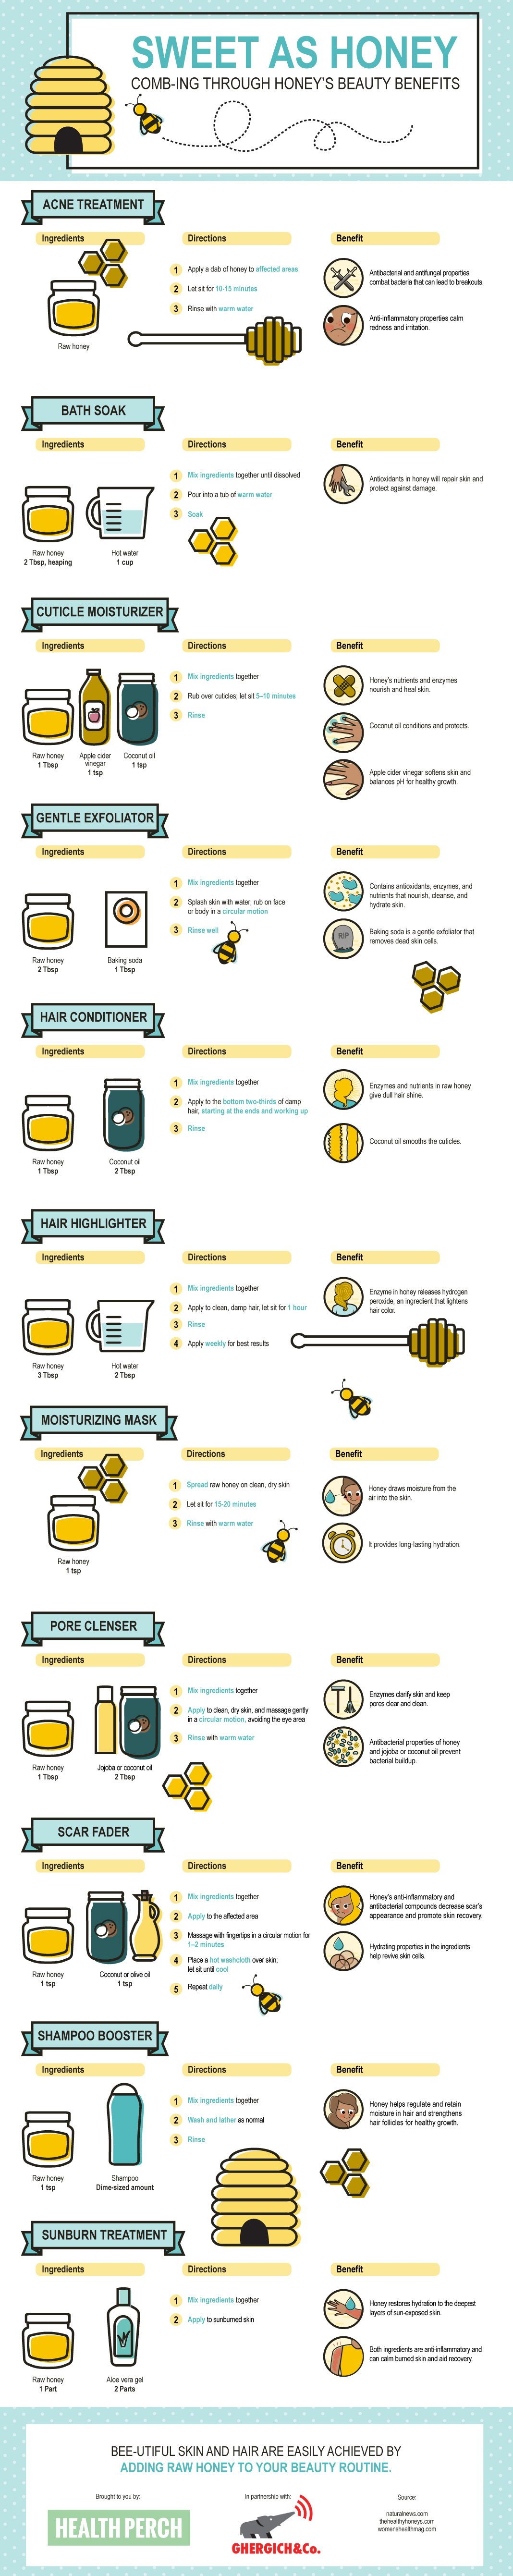 DIY Honey Beauty-Treatment Recipes - Infographic